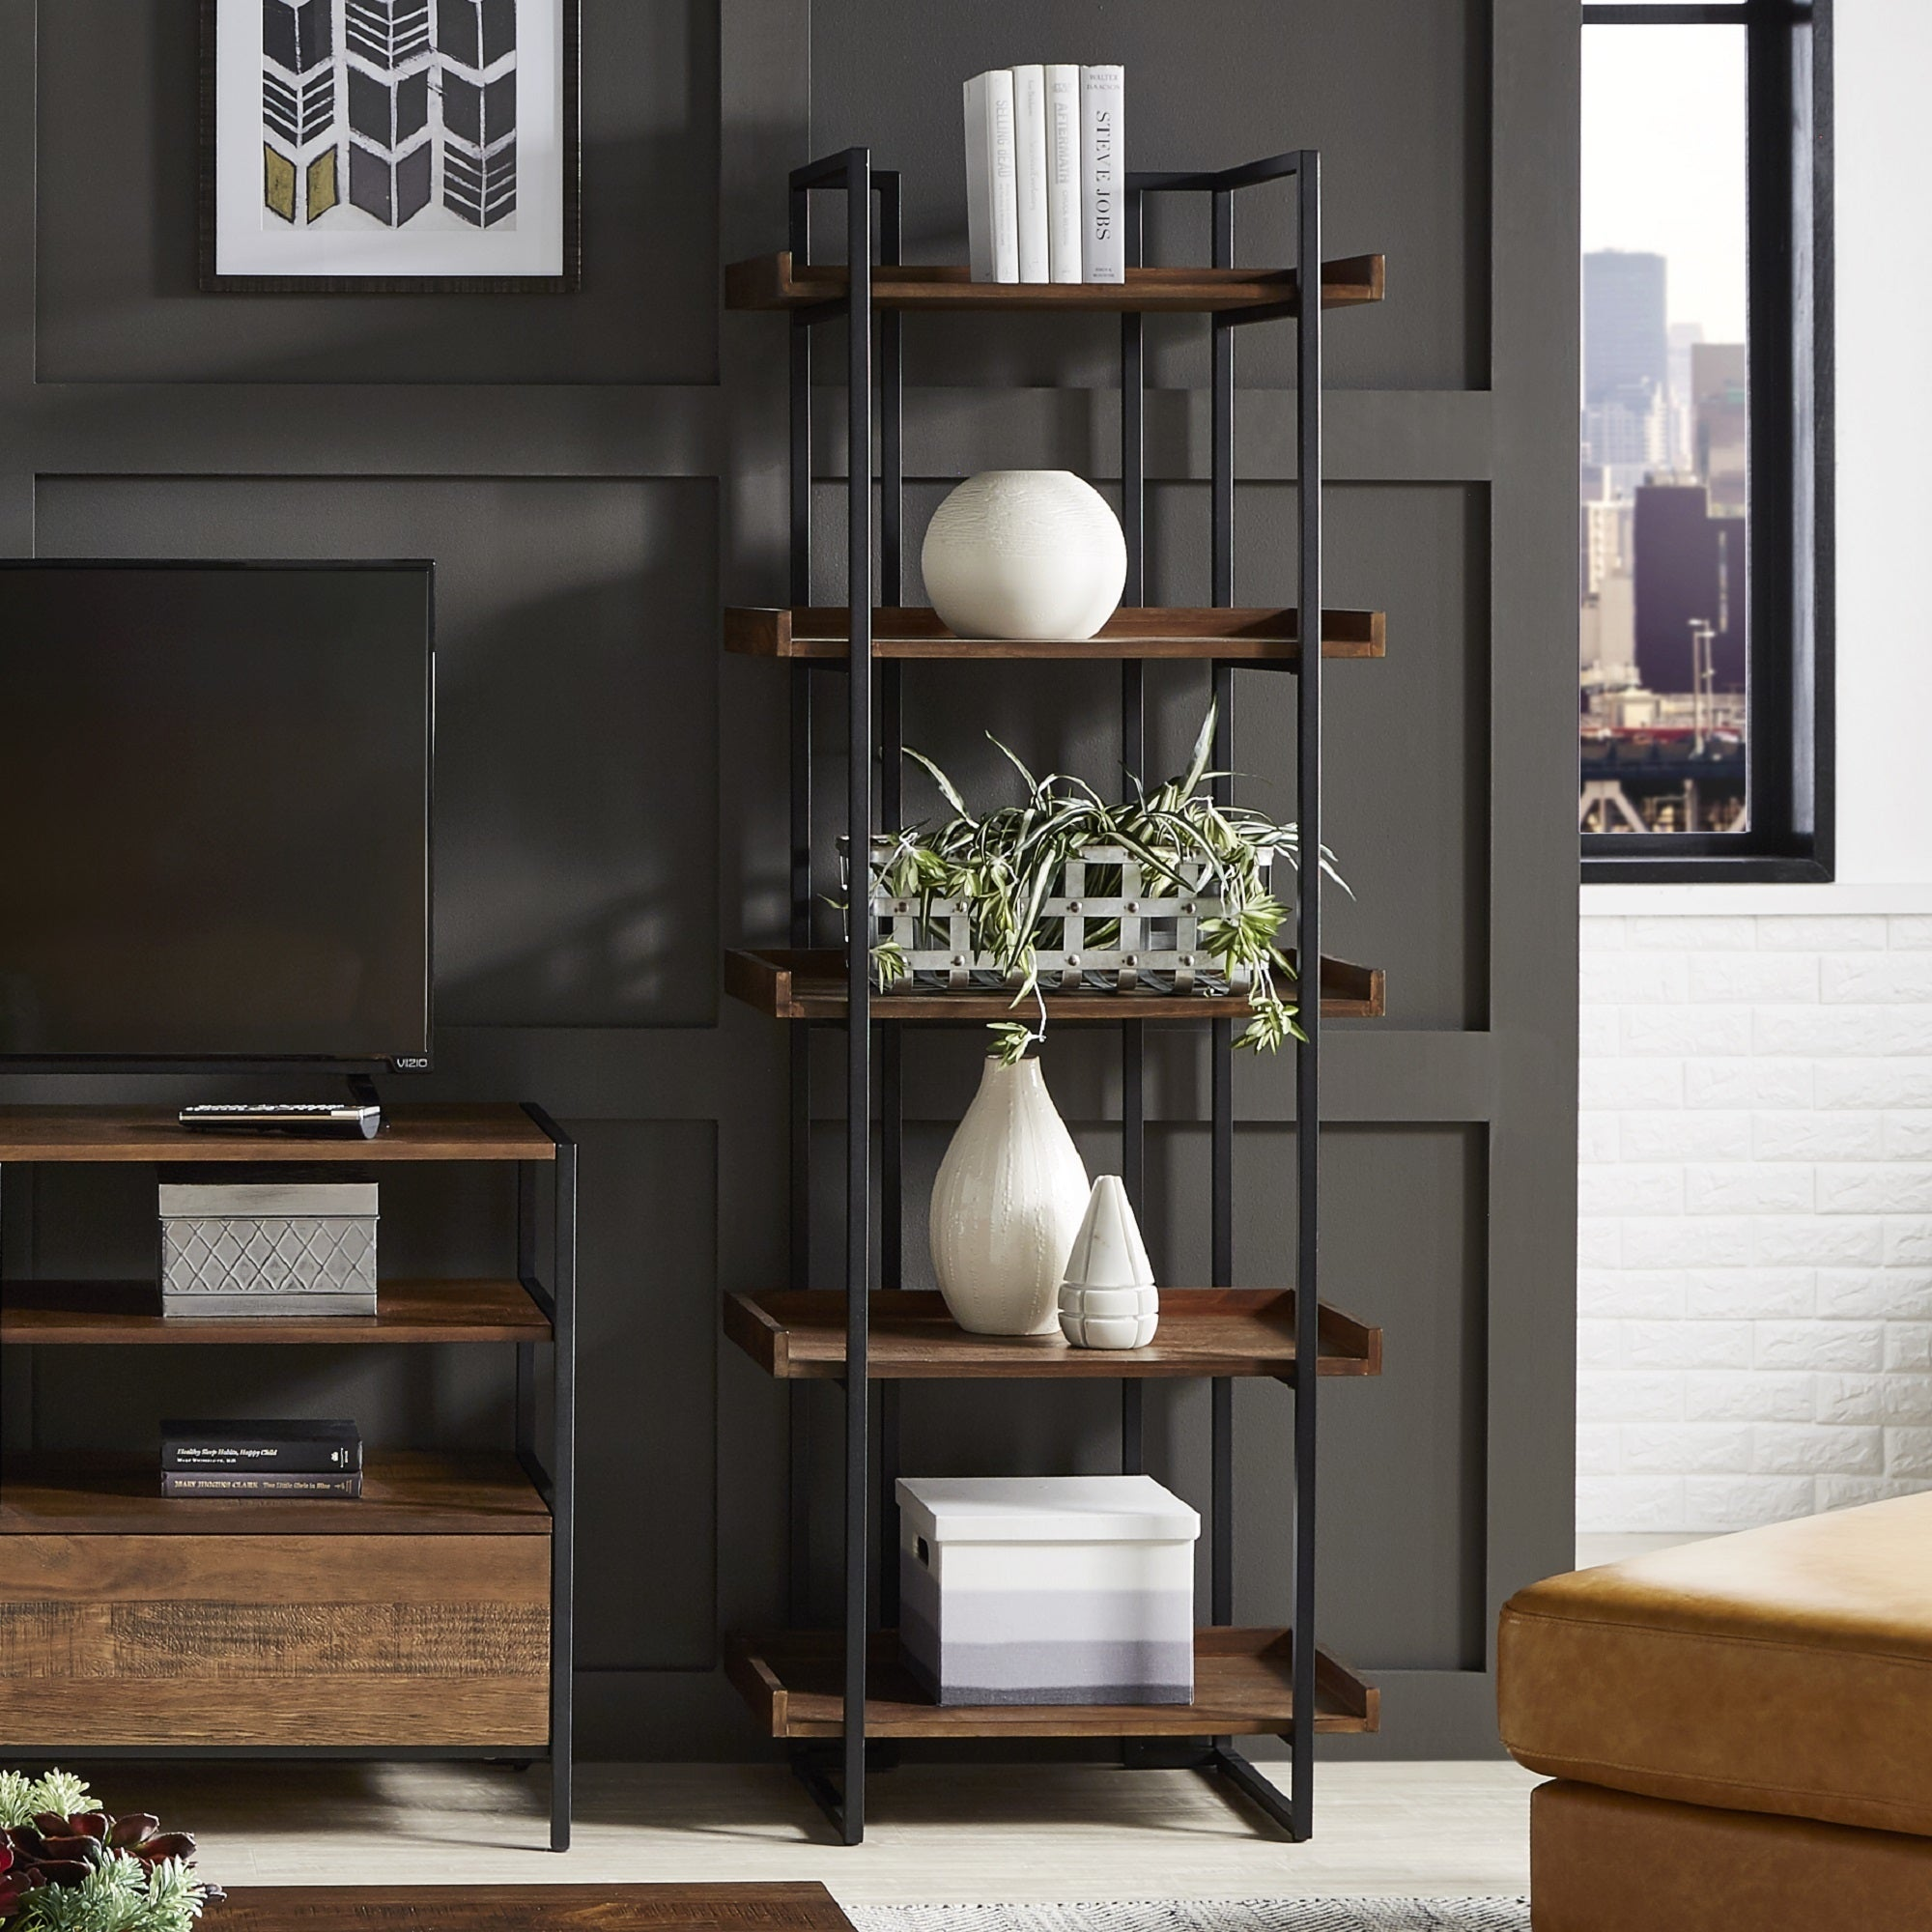 Corey Rustic Brown Etagere Bookcases by iNSPIRE Q Modern - Free Shipping  Today - Overstock.com - 25506303